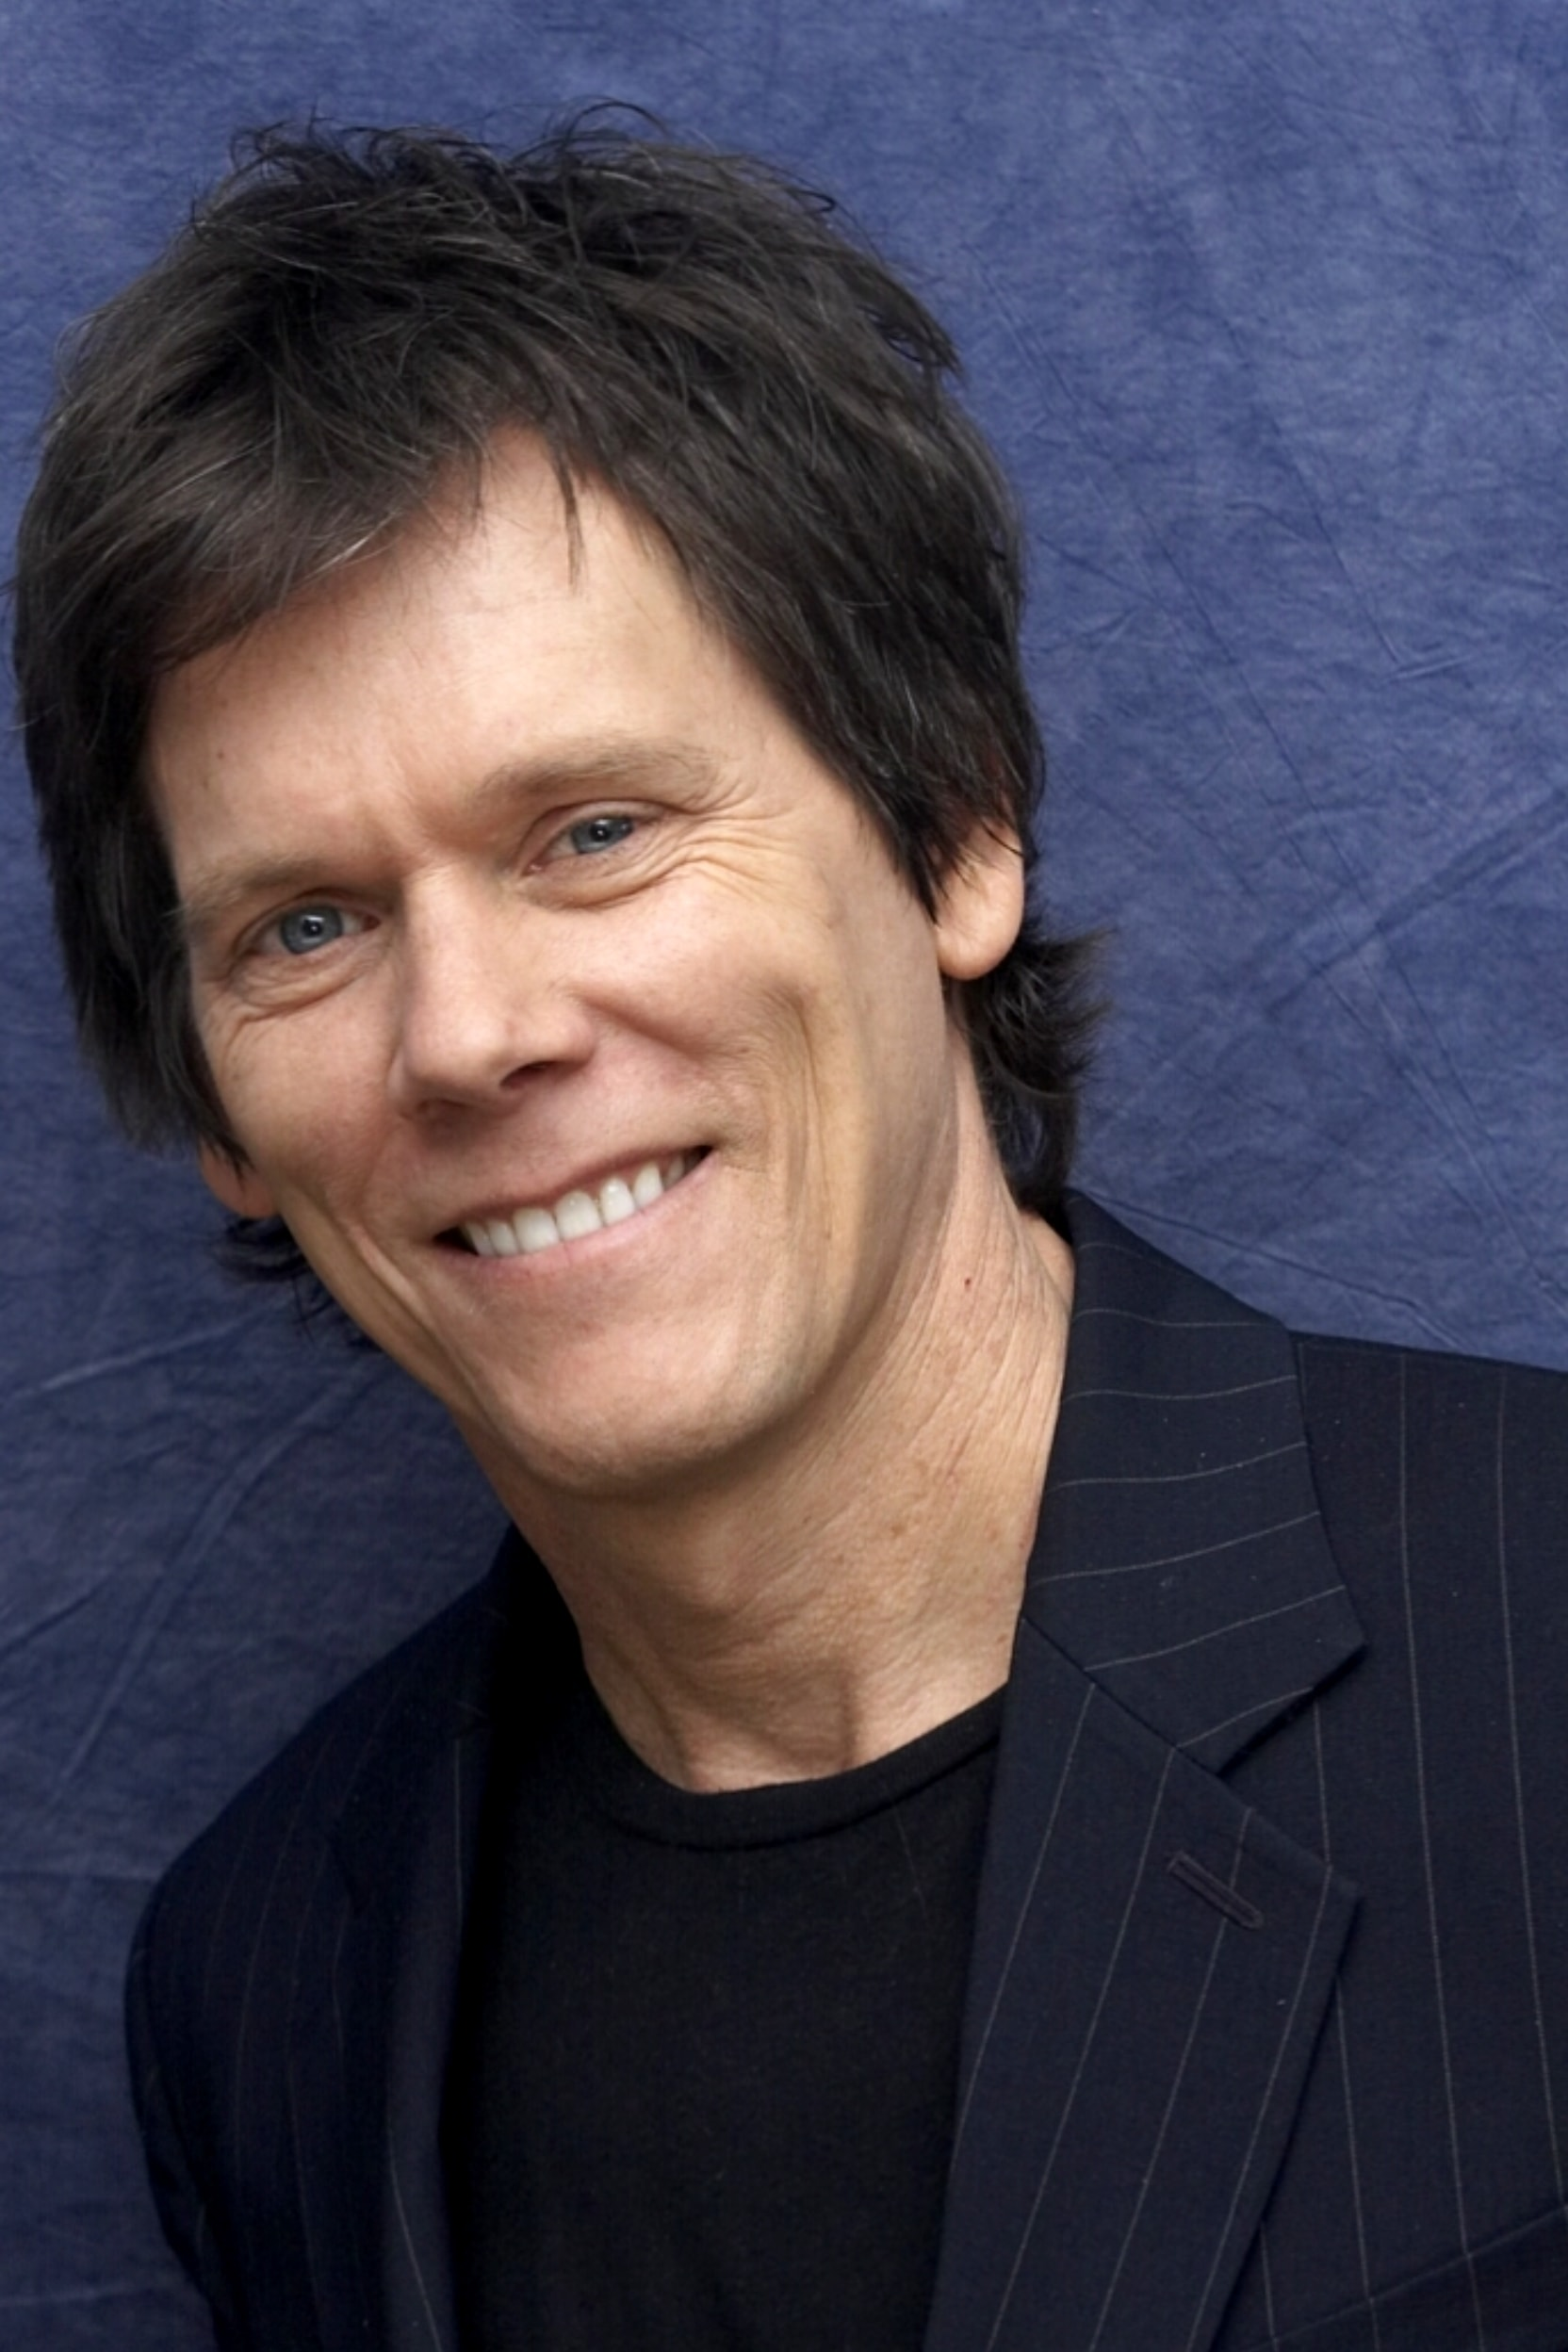 Kevin Bacon HD Desktop Wallpapers 7wallpapersnet 1664x2496